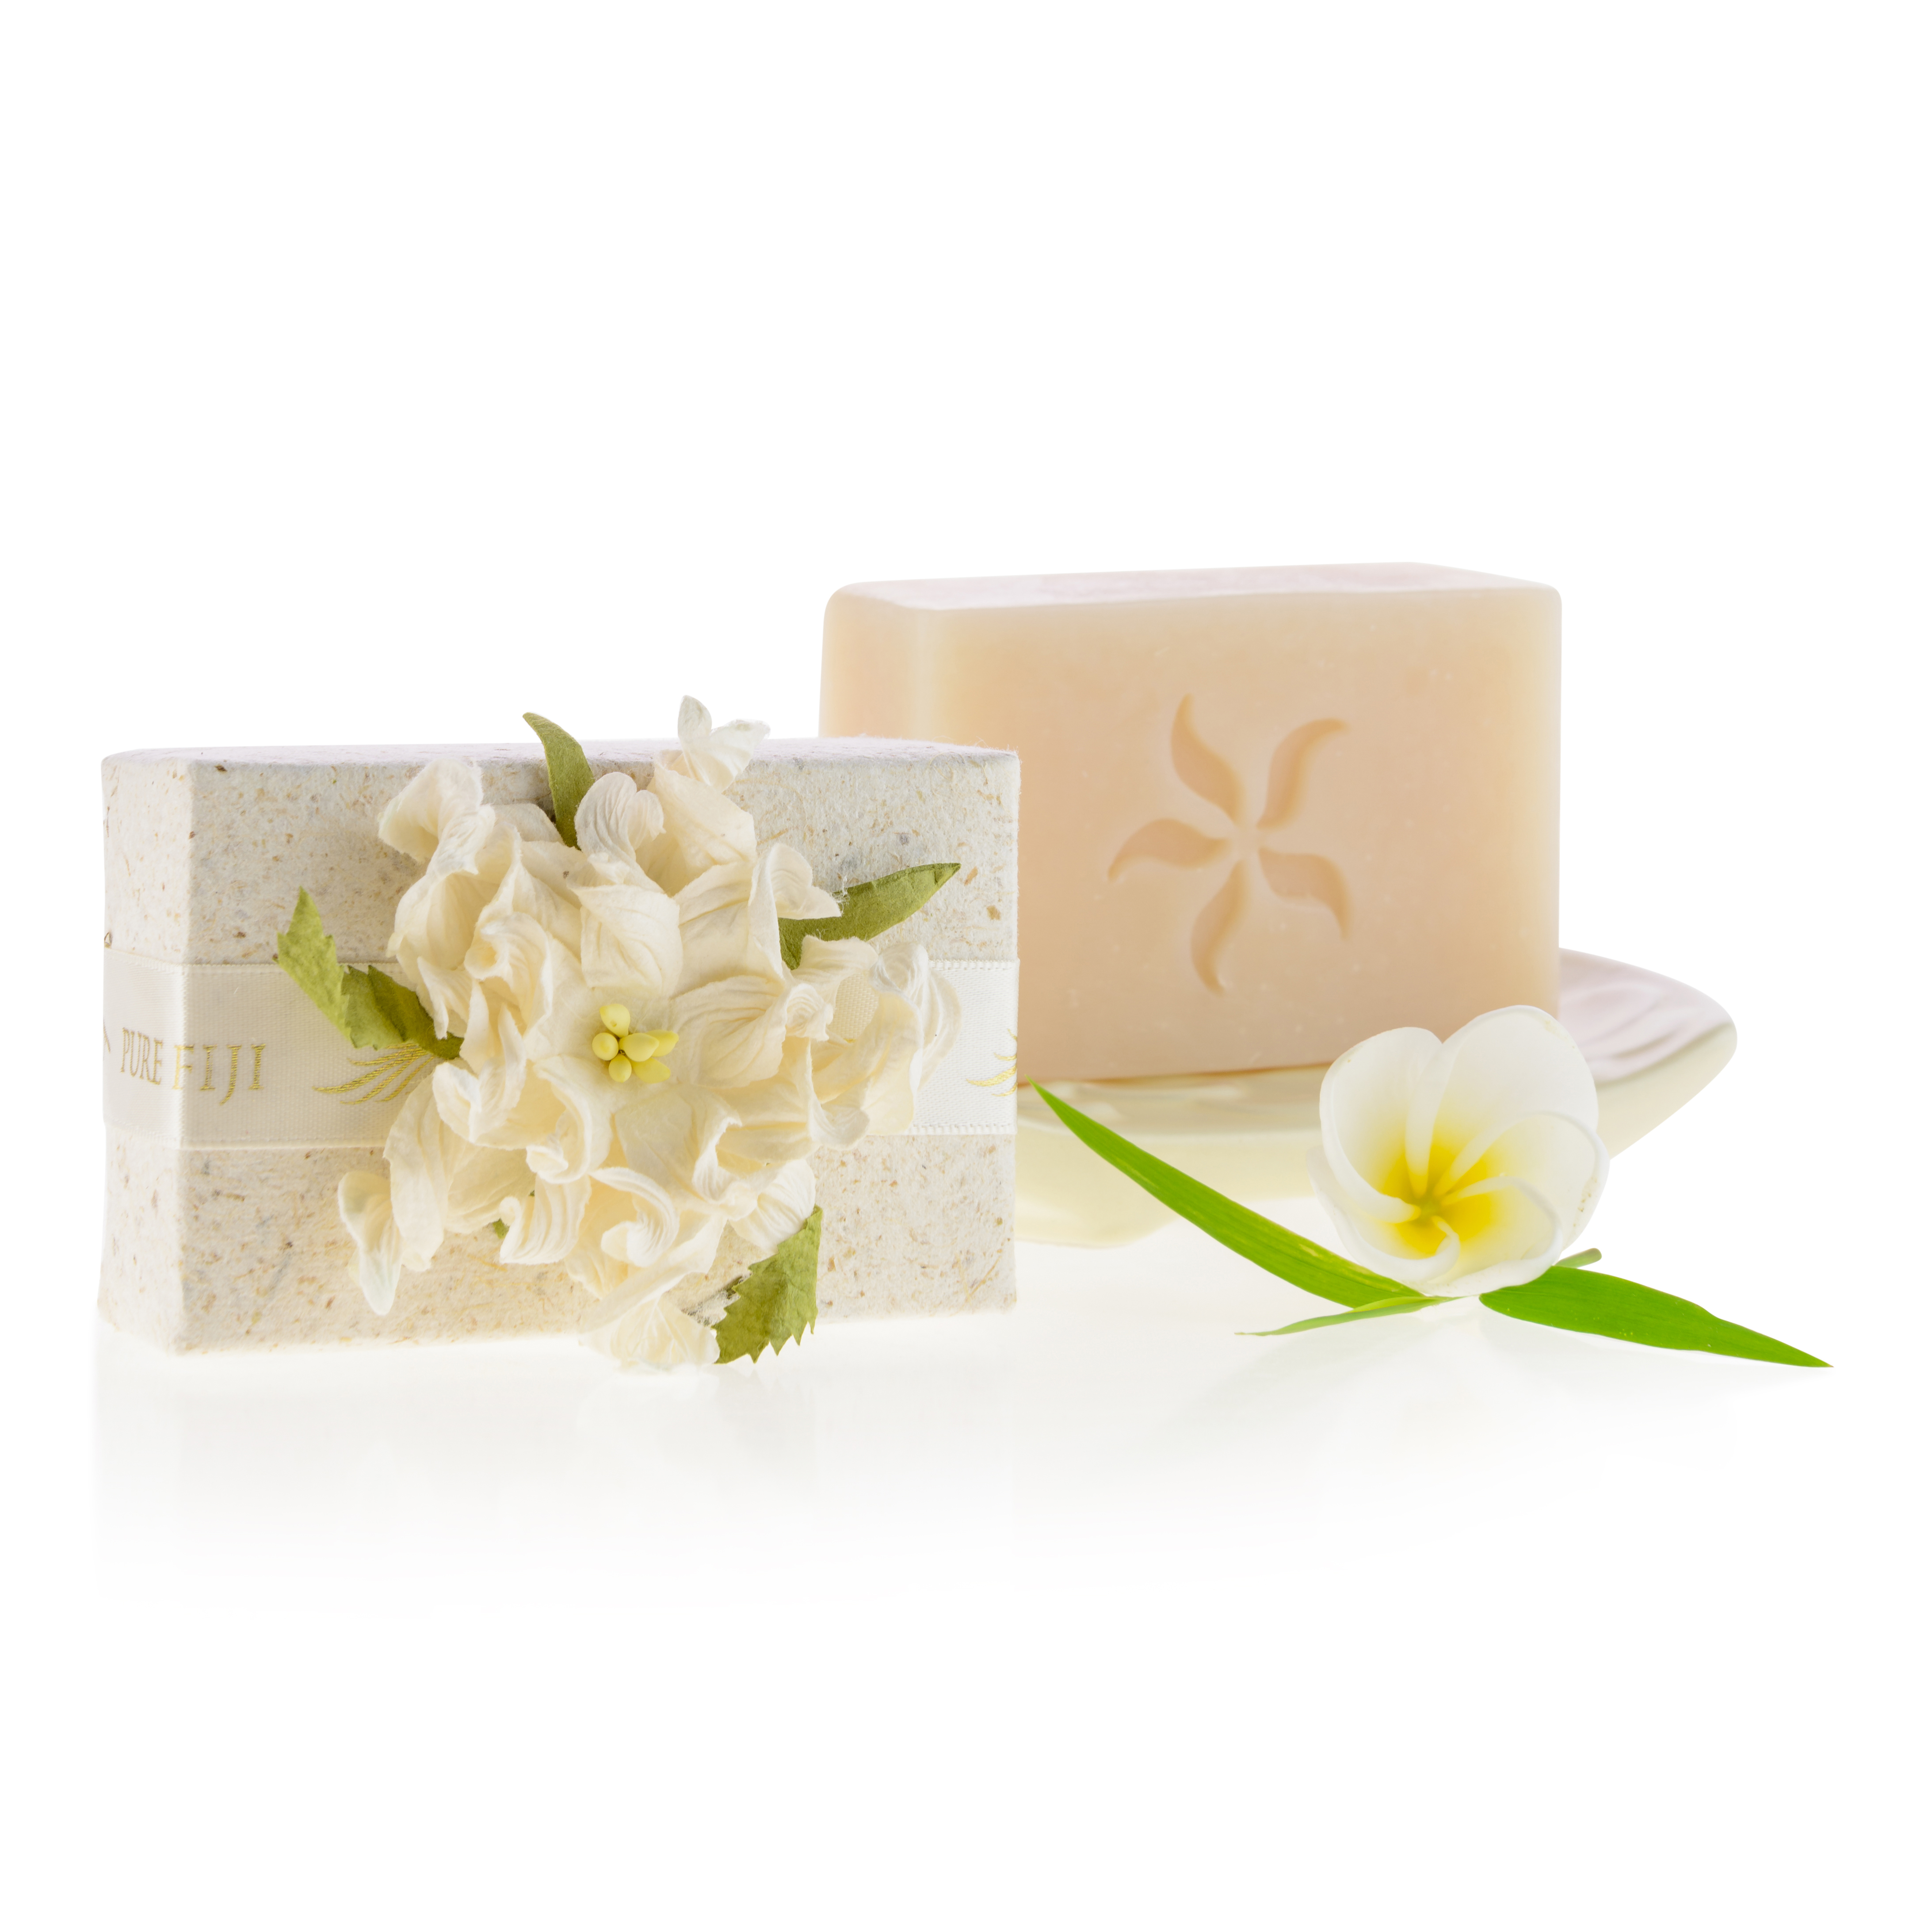 paper soap Macpac dry paper soap are compact, dry sheets of soap suitable for taking in  your carry on luggage comes in pack of 50.